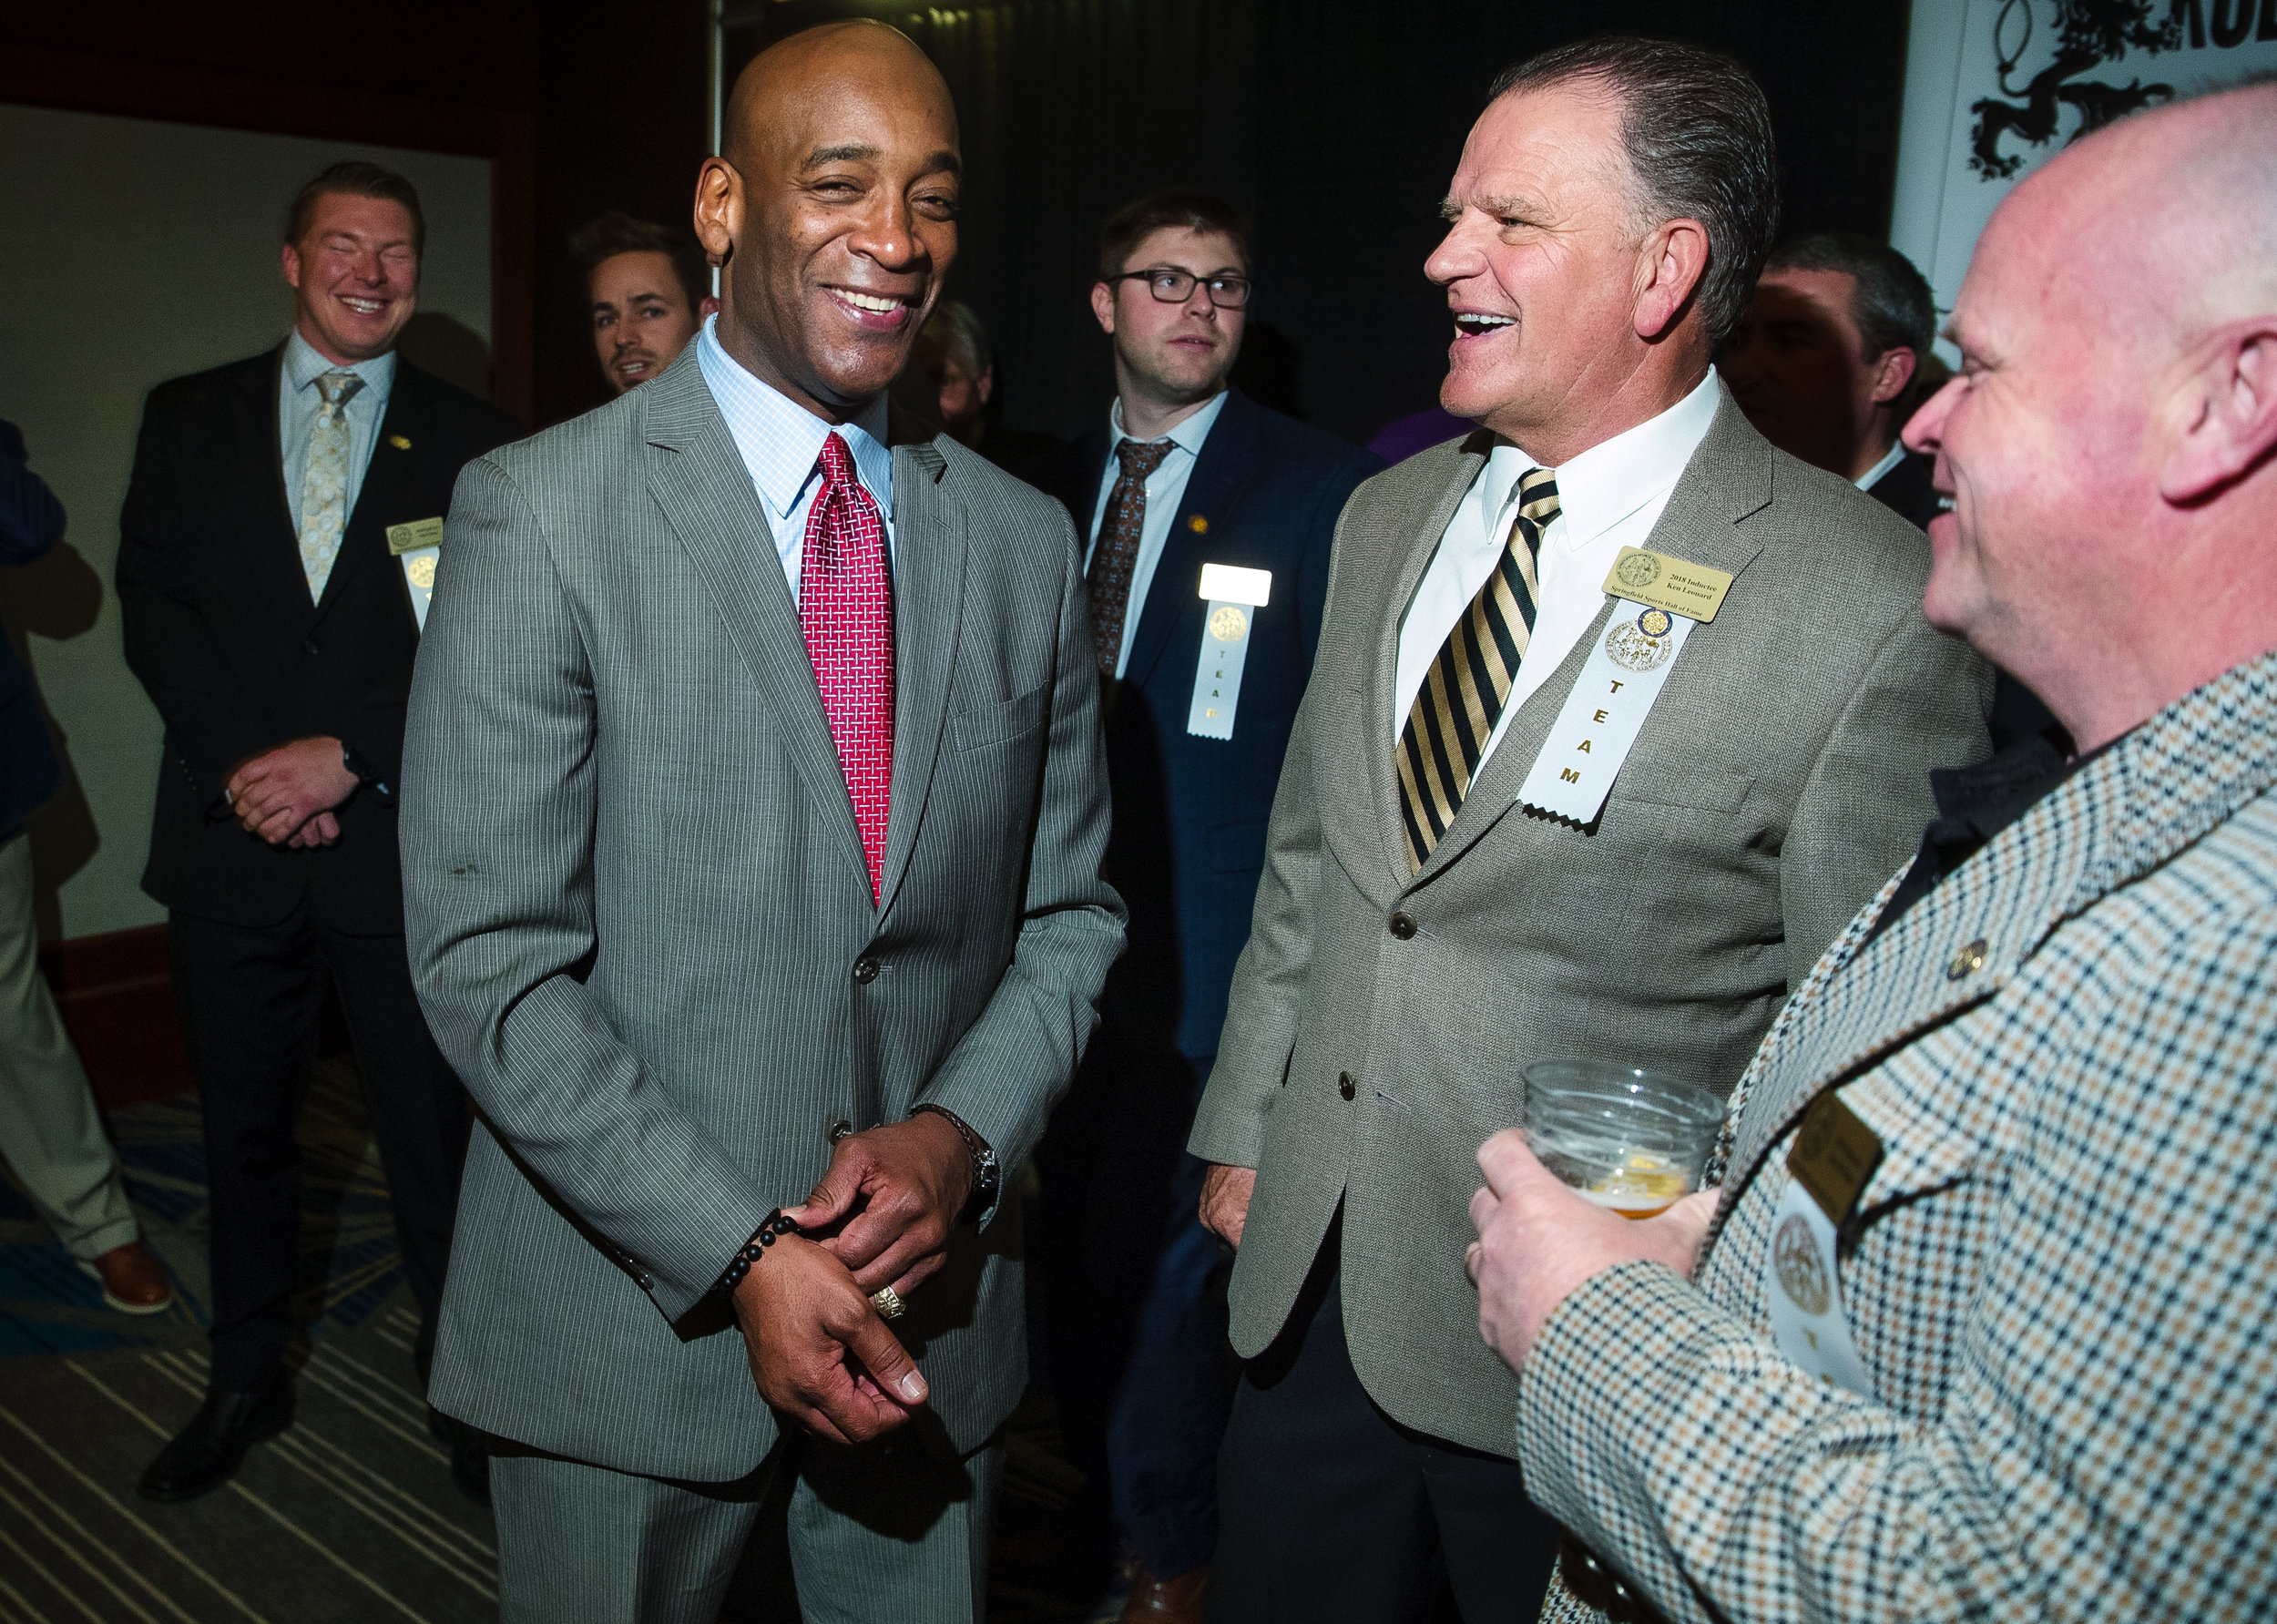 Former Notre Dame quarterback Tony Rice laughs with Sacred Heart-Griffin head football coach Ken Leonard and defensive coordinator Jim McMann before the ceremony at the Springfield Sports Hall of Fame banquet at the Crowne Plaza Monday, April 9, 2018. Rice lead the Fighting Irish to the 1988 national championship. [Ted Schurter/The State Journal-Register]